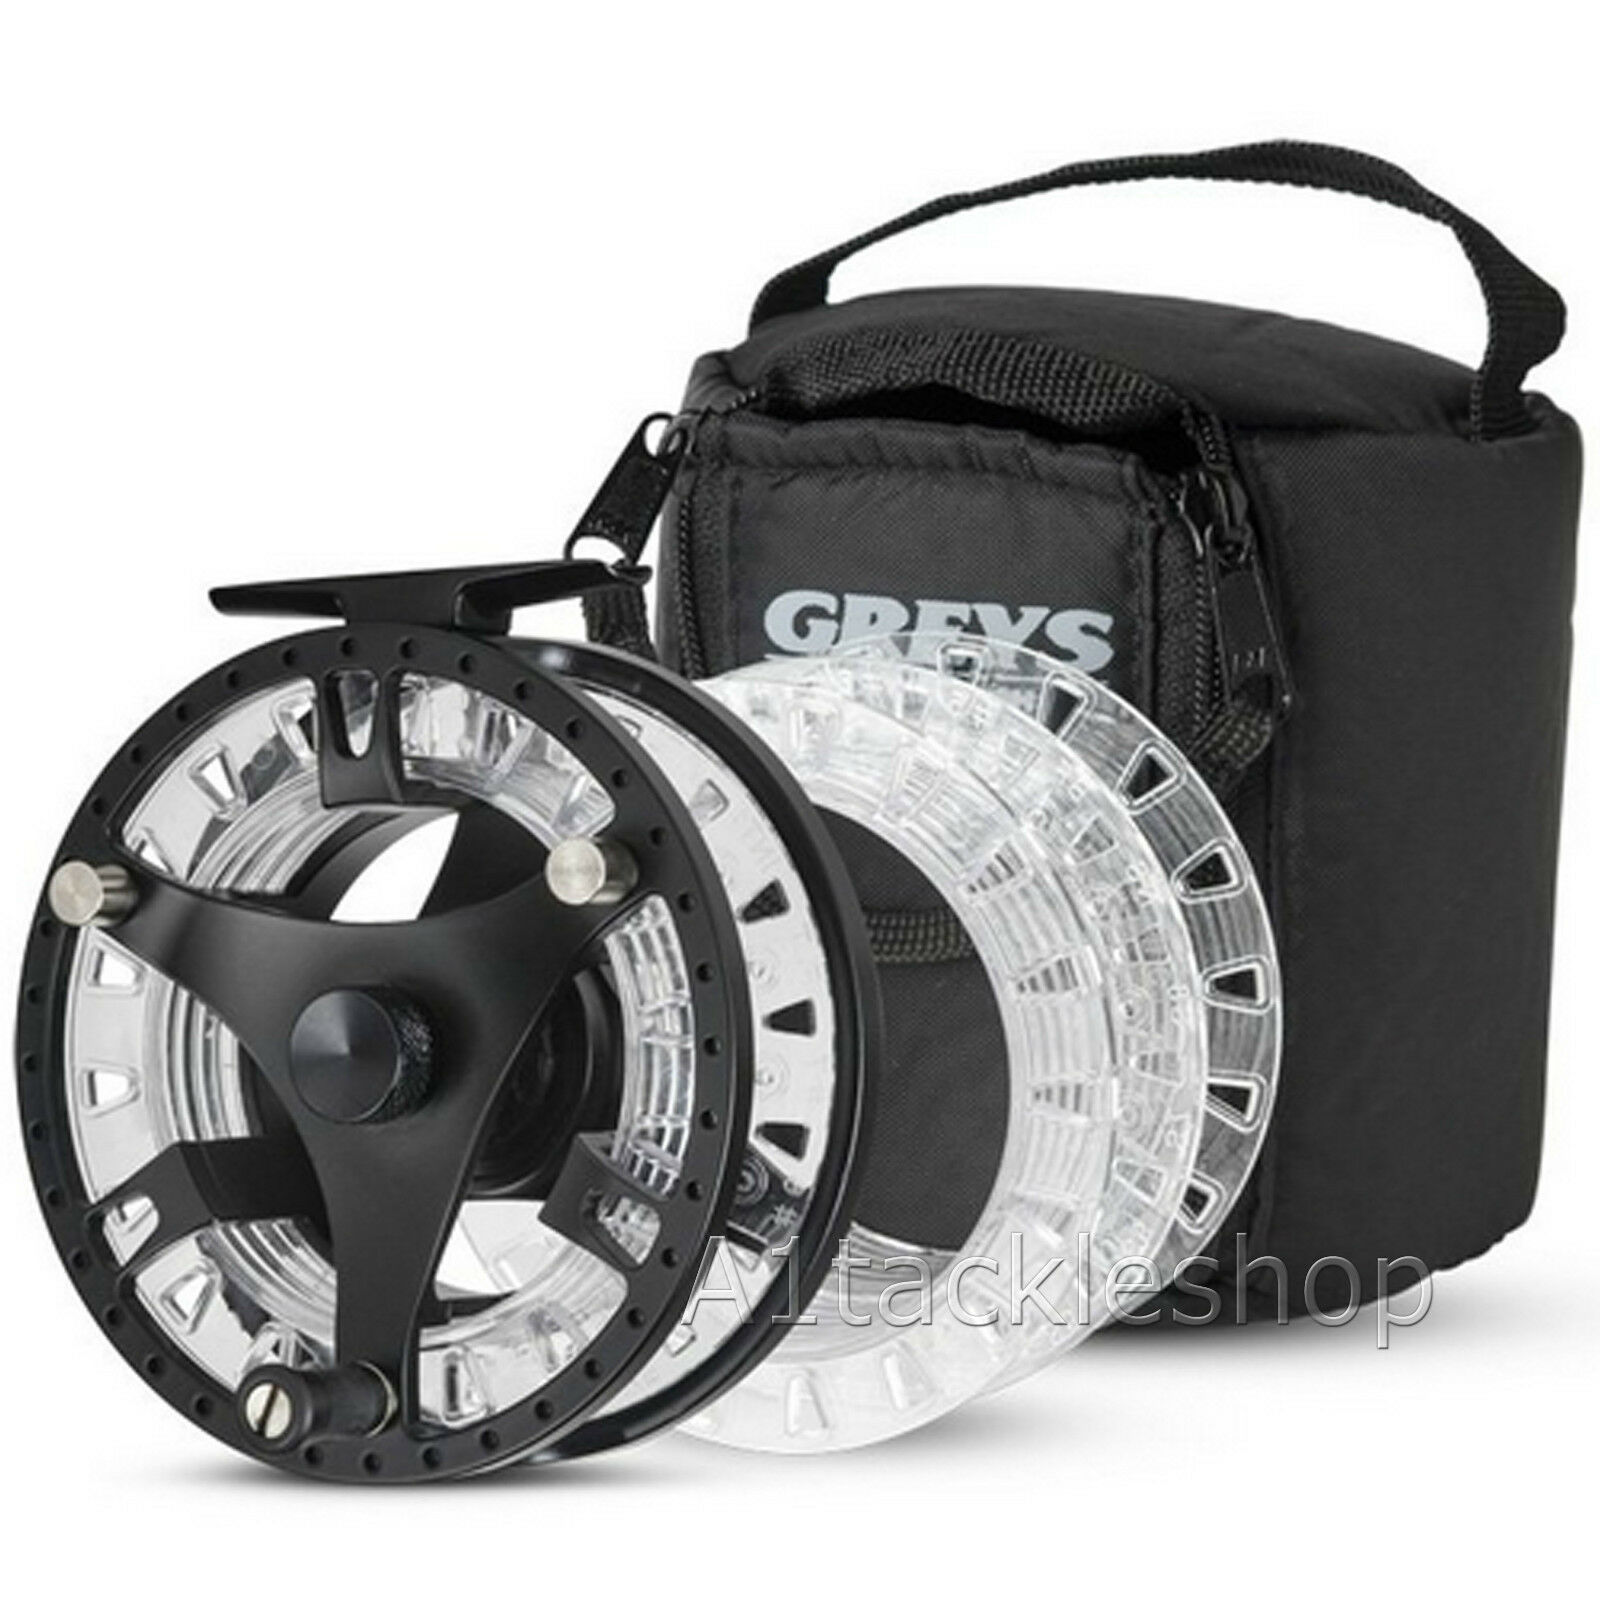 Greys GTS 500 Series Fly Fishing Reel